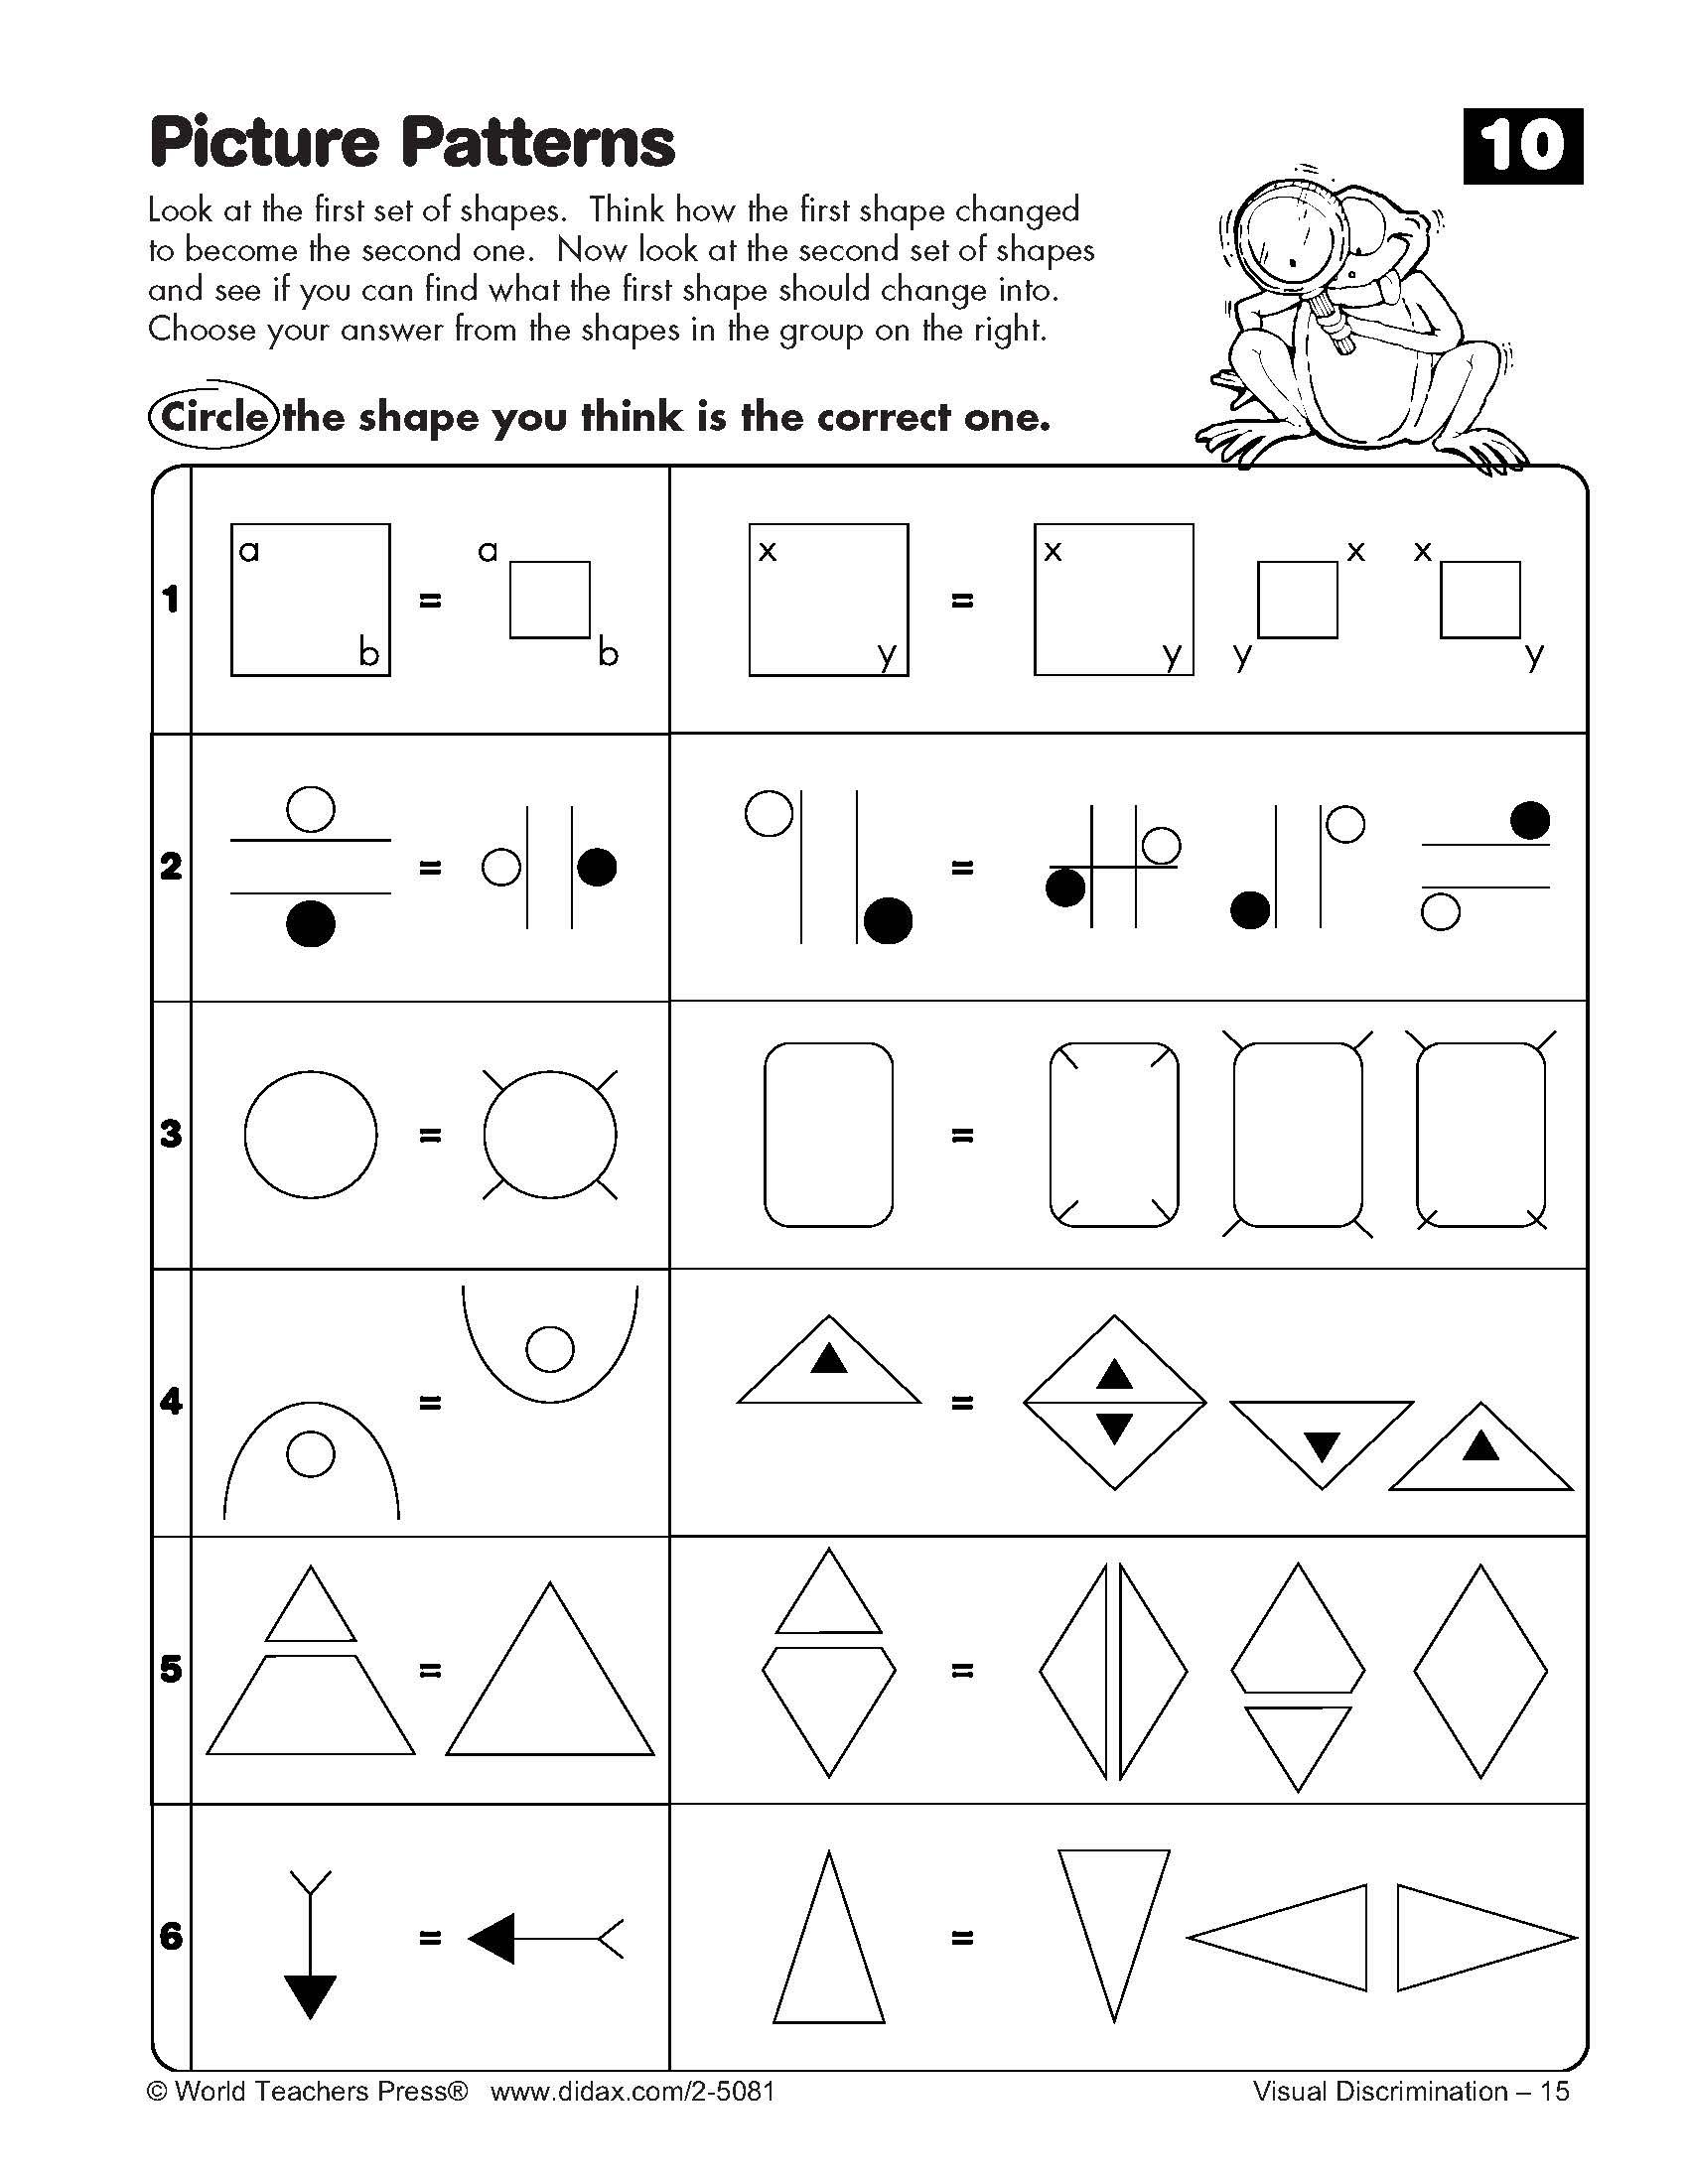 Visual Discrimination Exploring And Solving Picture Patterns